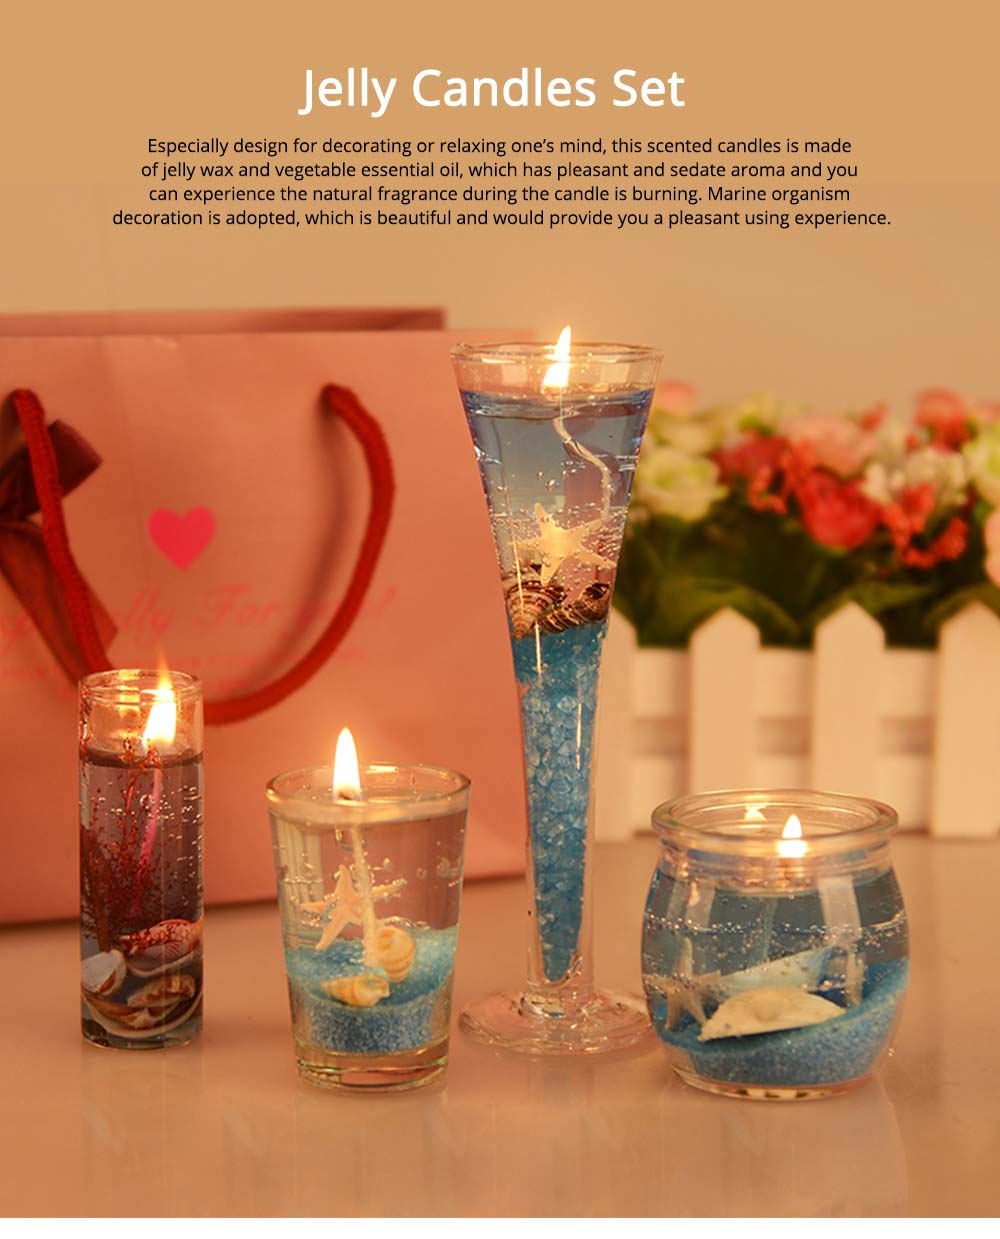 Romantic Fragrance Scented Candles Set Marine Organism Decoration, Valentine's Day Weeding Birthday Present Jelly Candle Suit 0